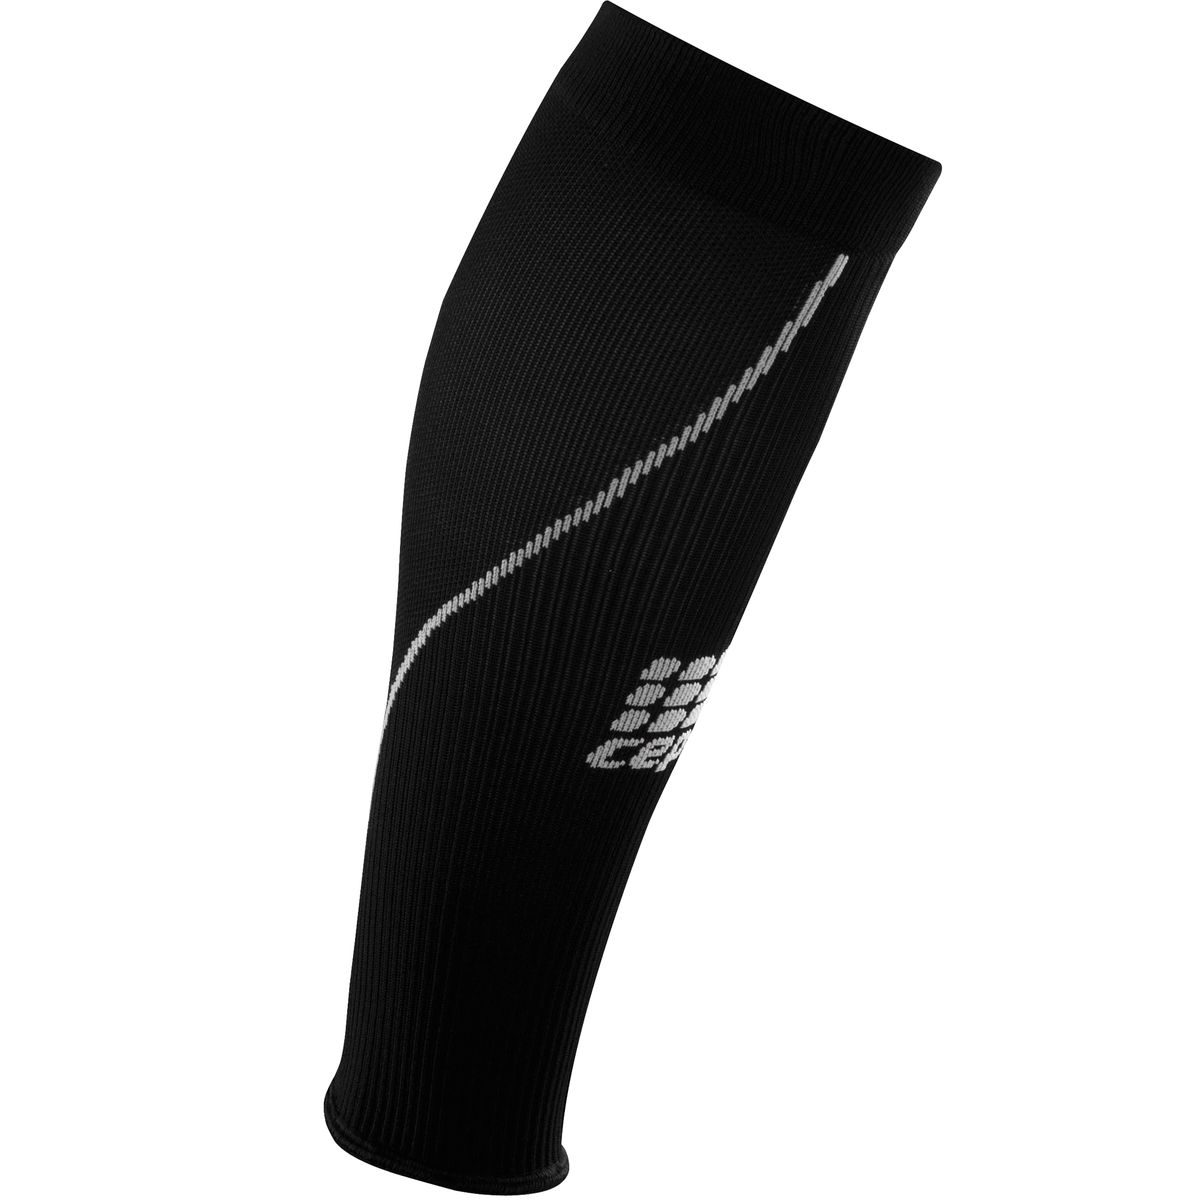 CALF SLEEVES 2.0 women's compression sleeves